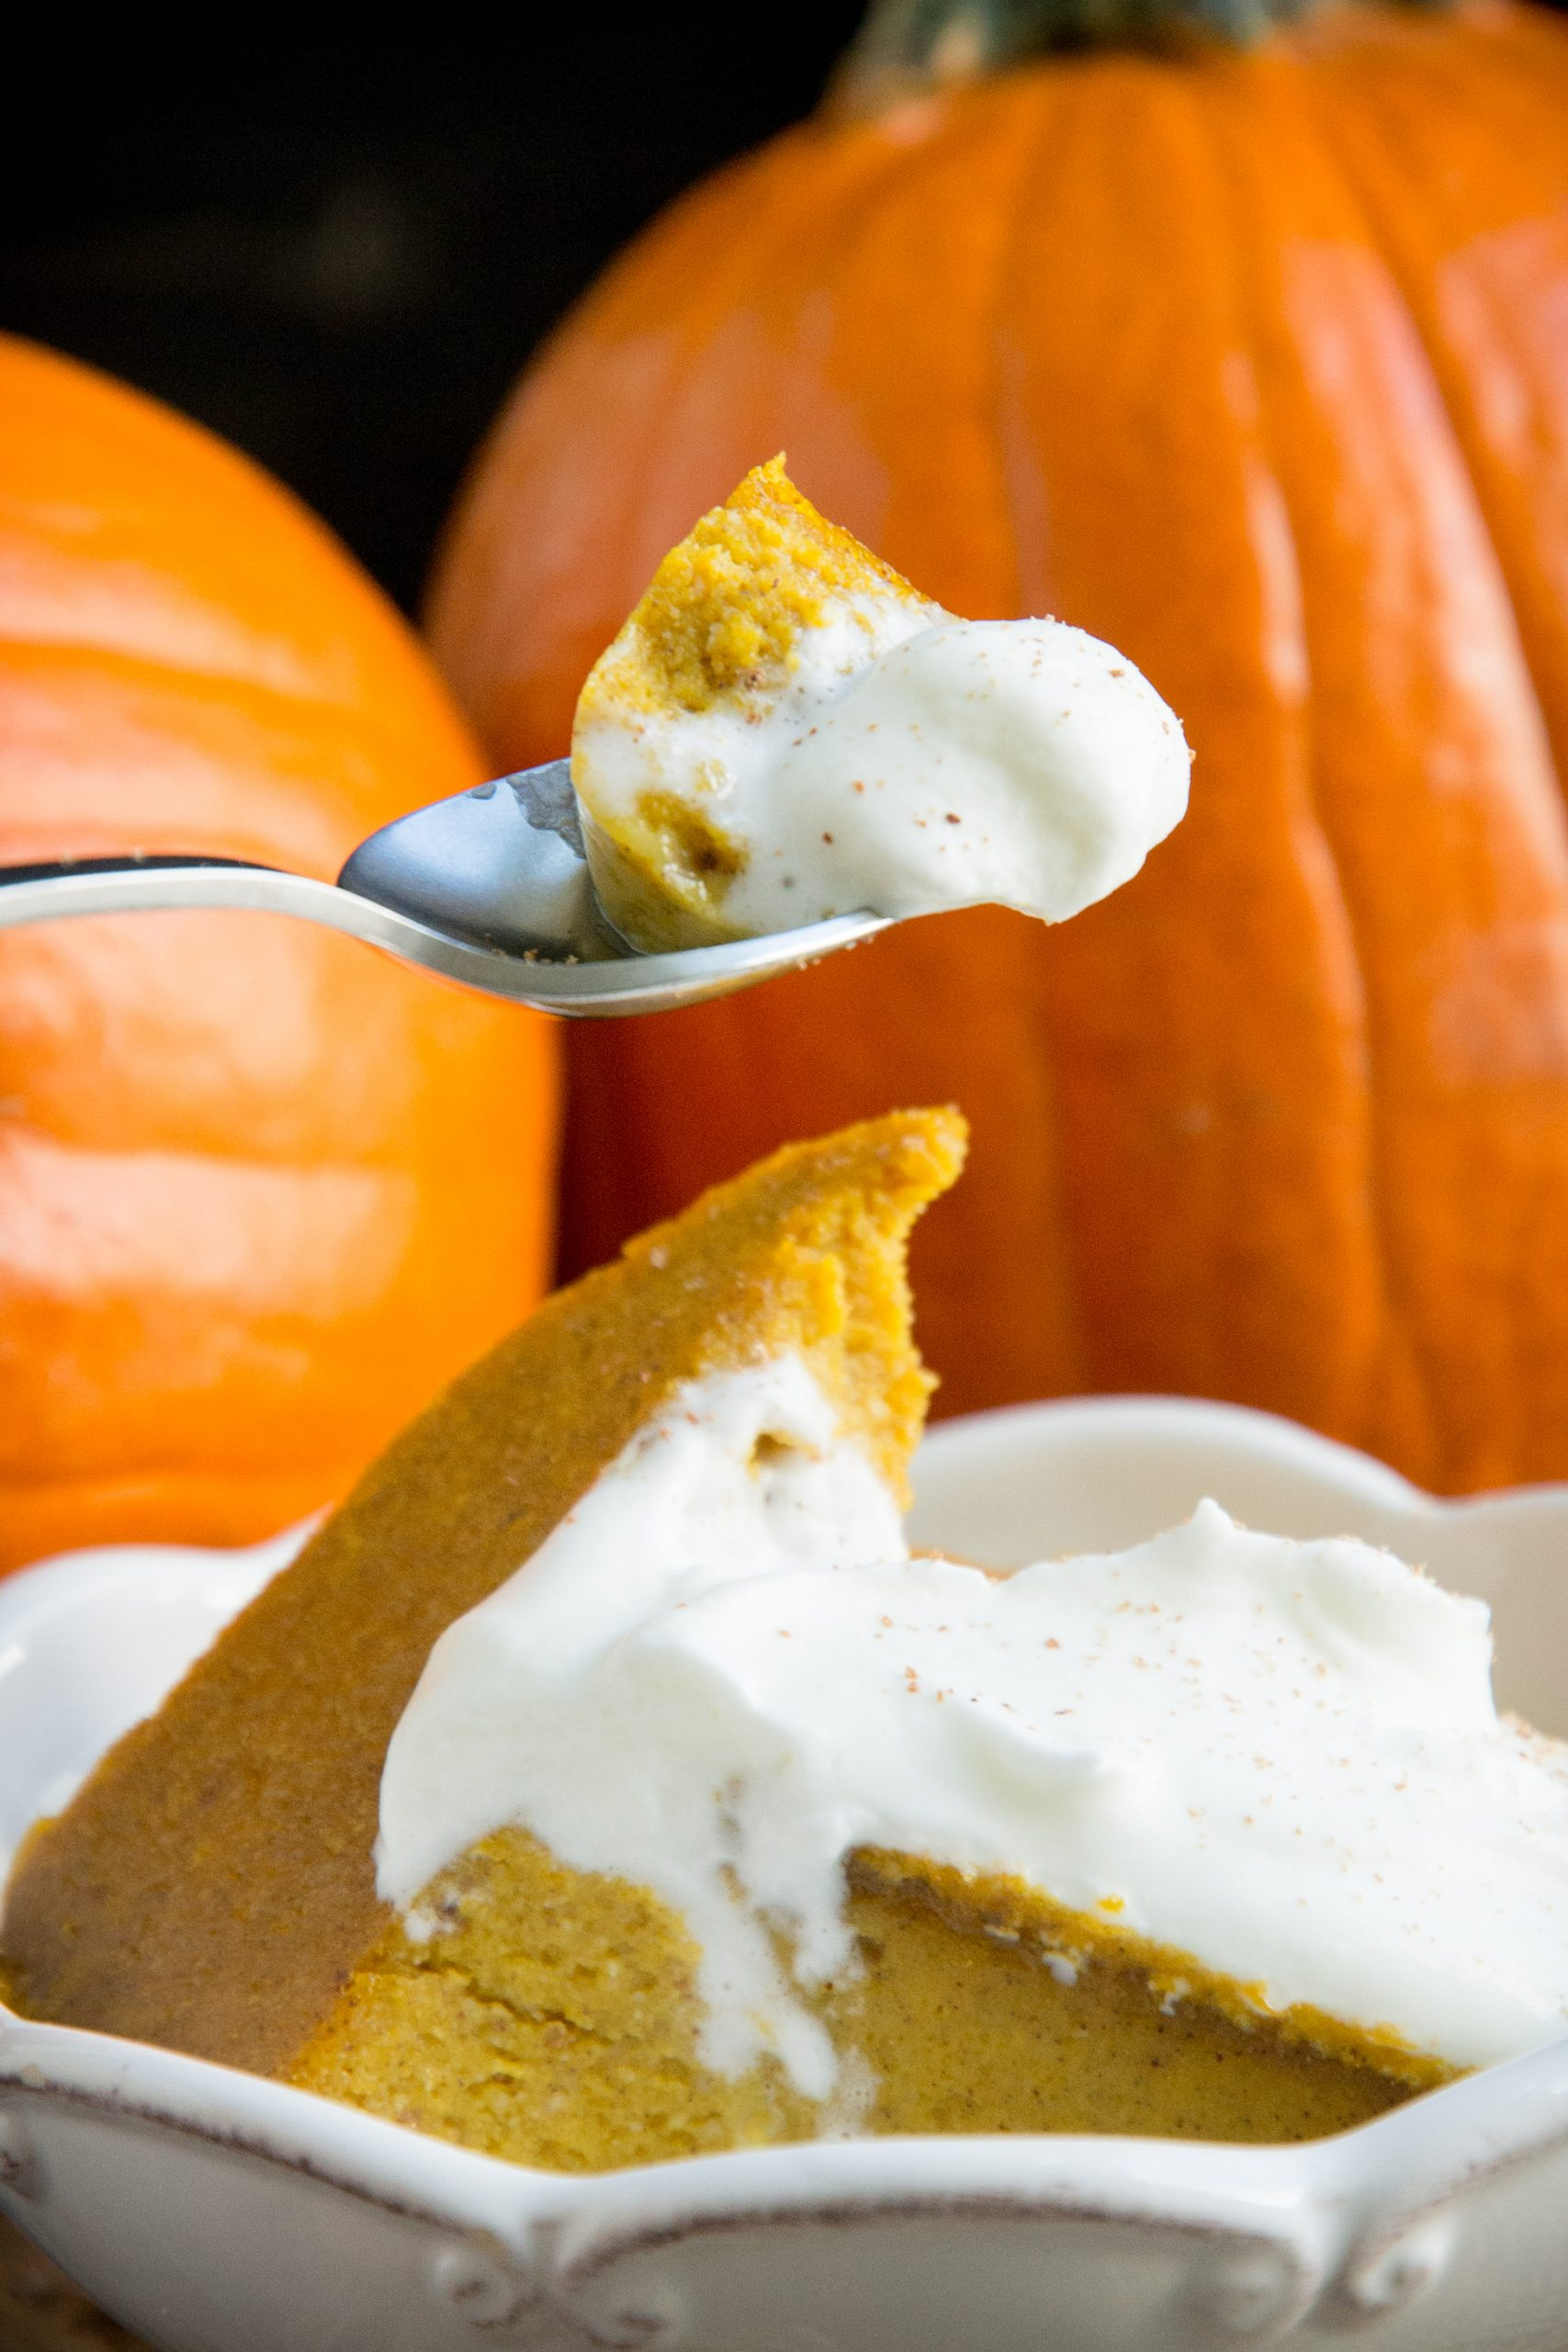 Taking a bite of the pumpkin custard.